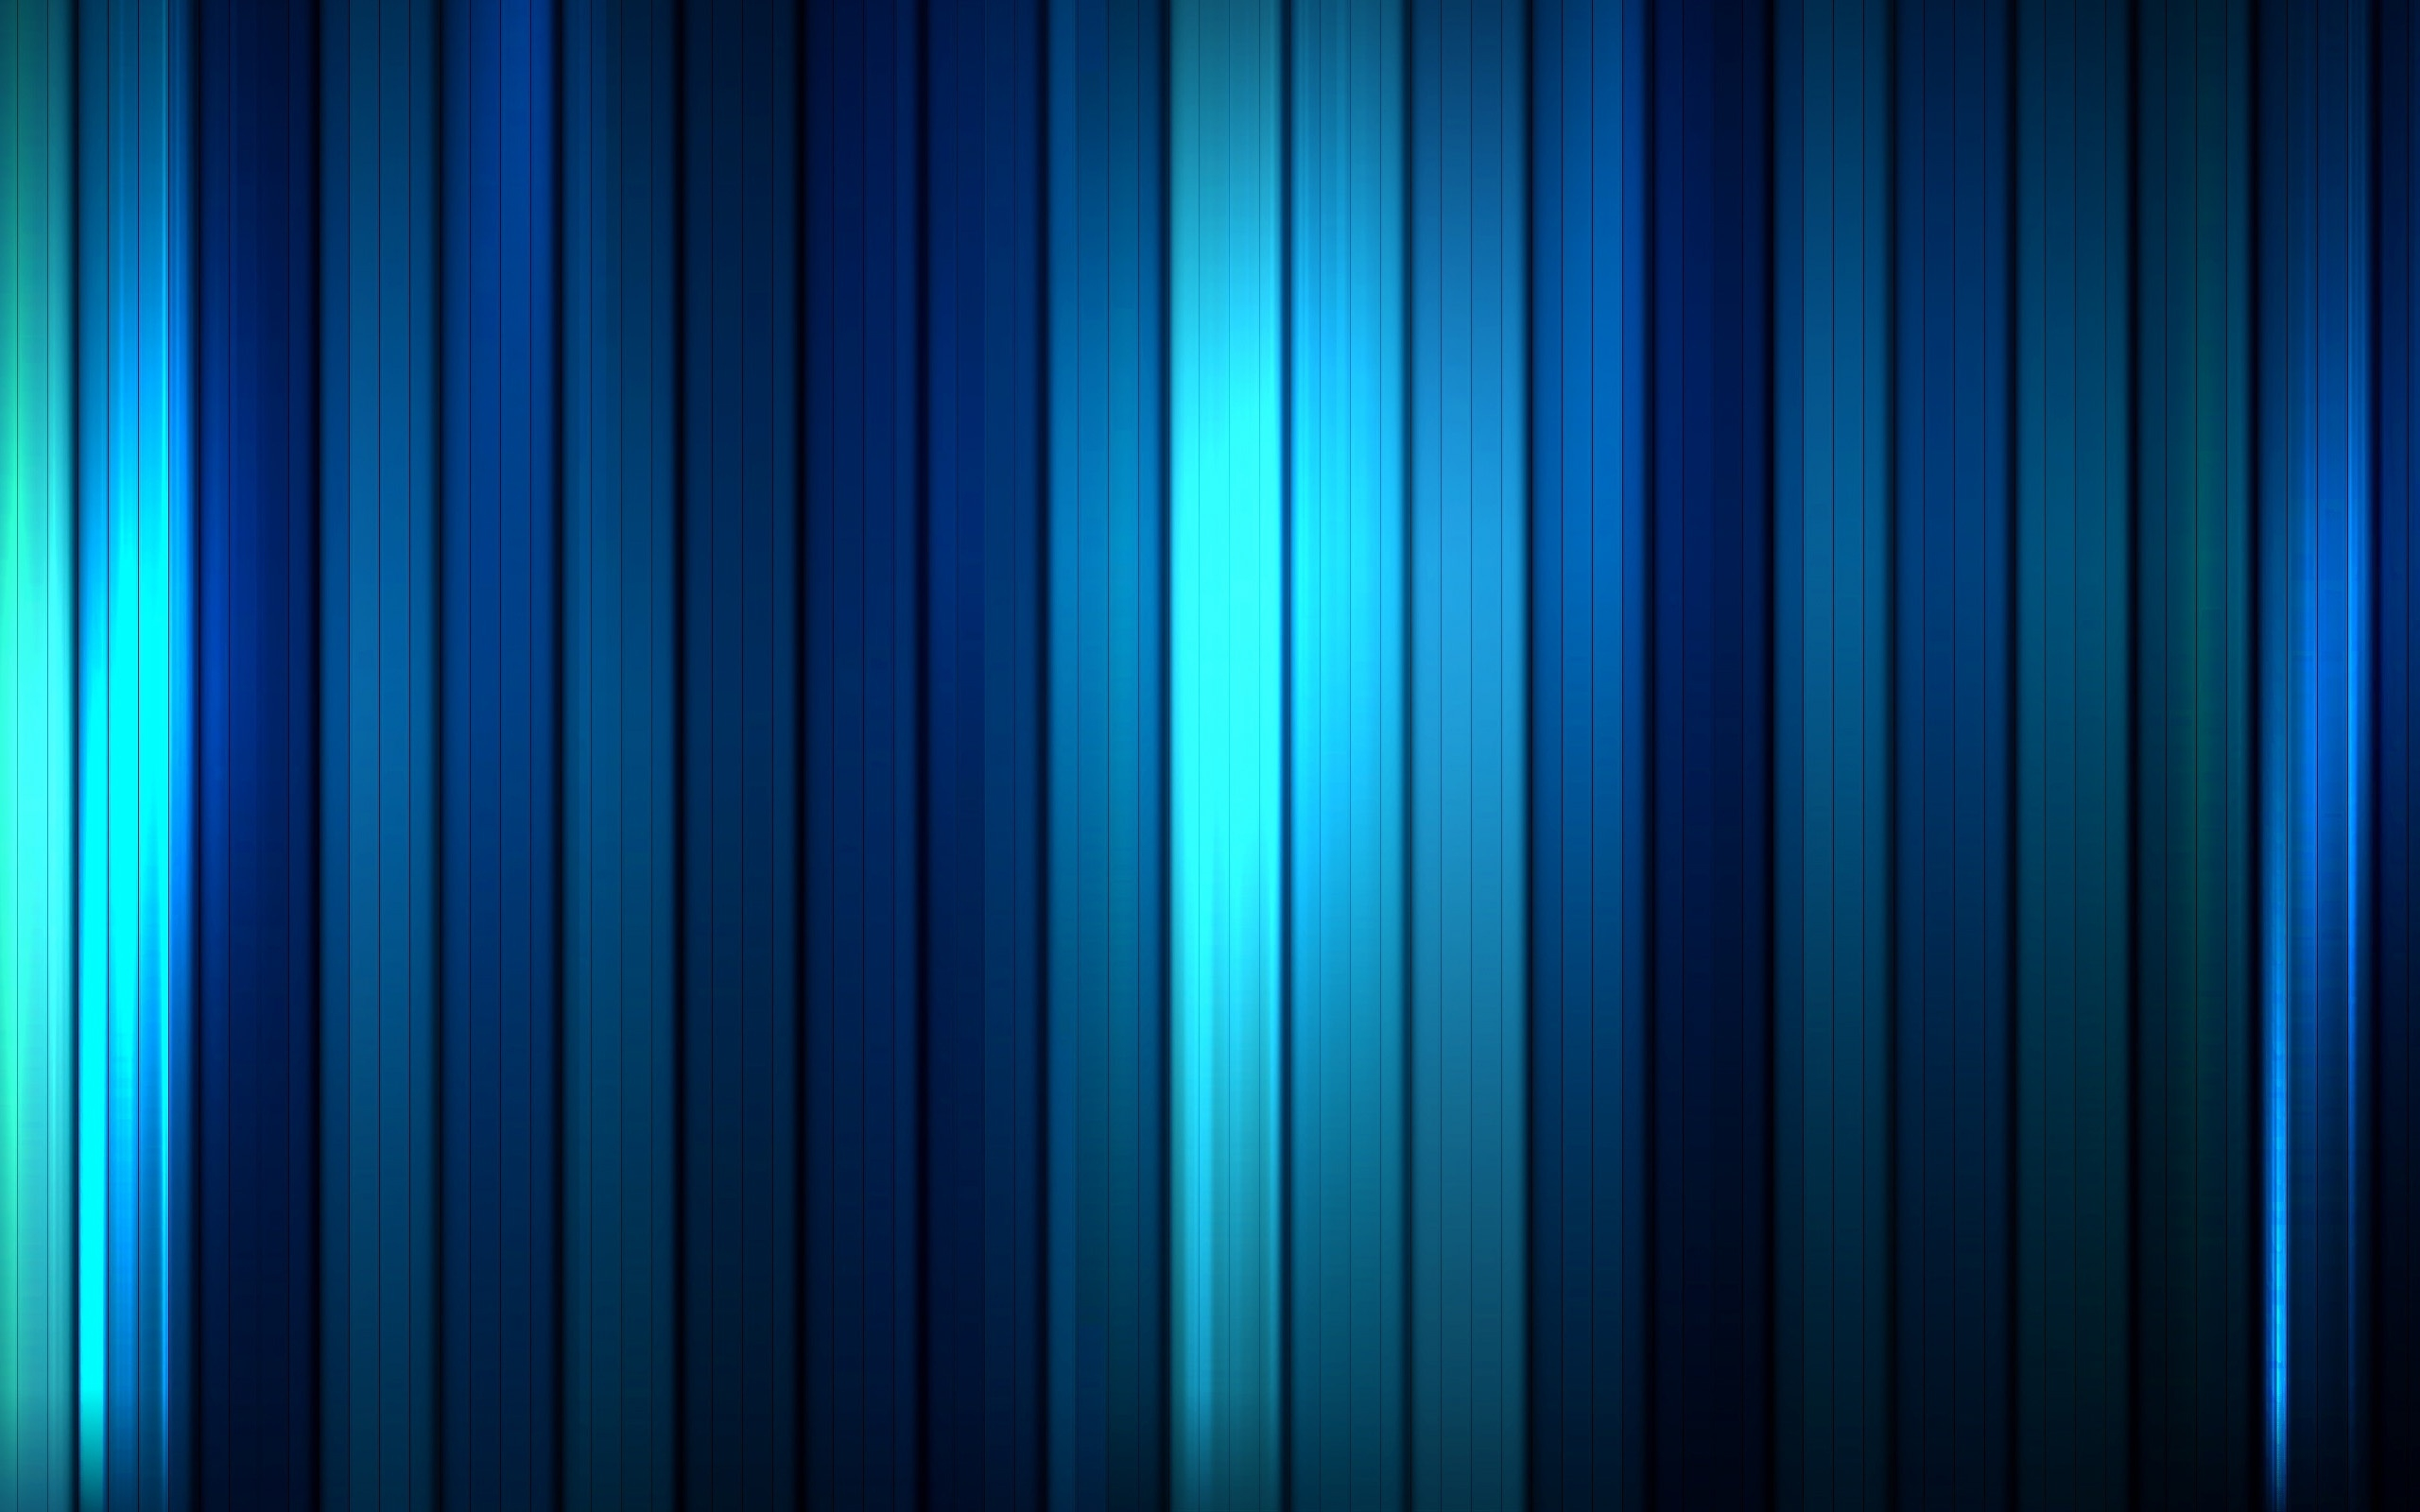 Navy blue wallpaper 7651 2560x1600 px for Navy blue wallpaper